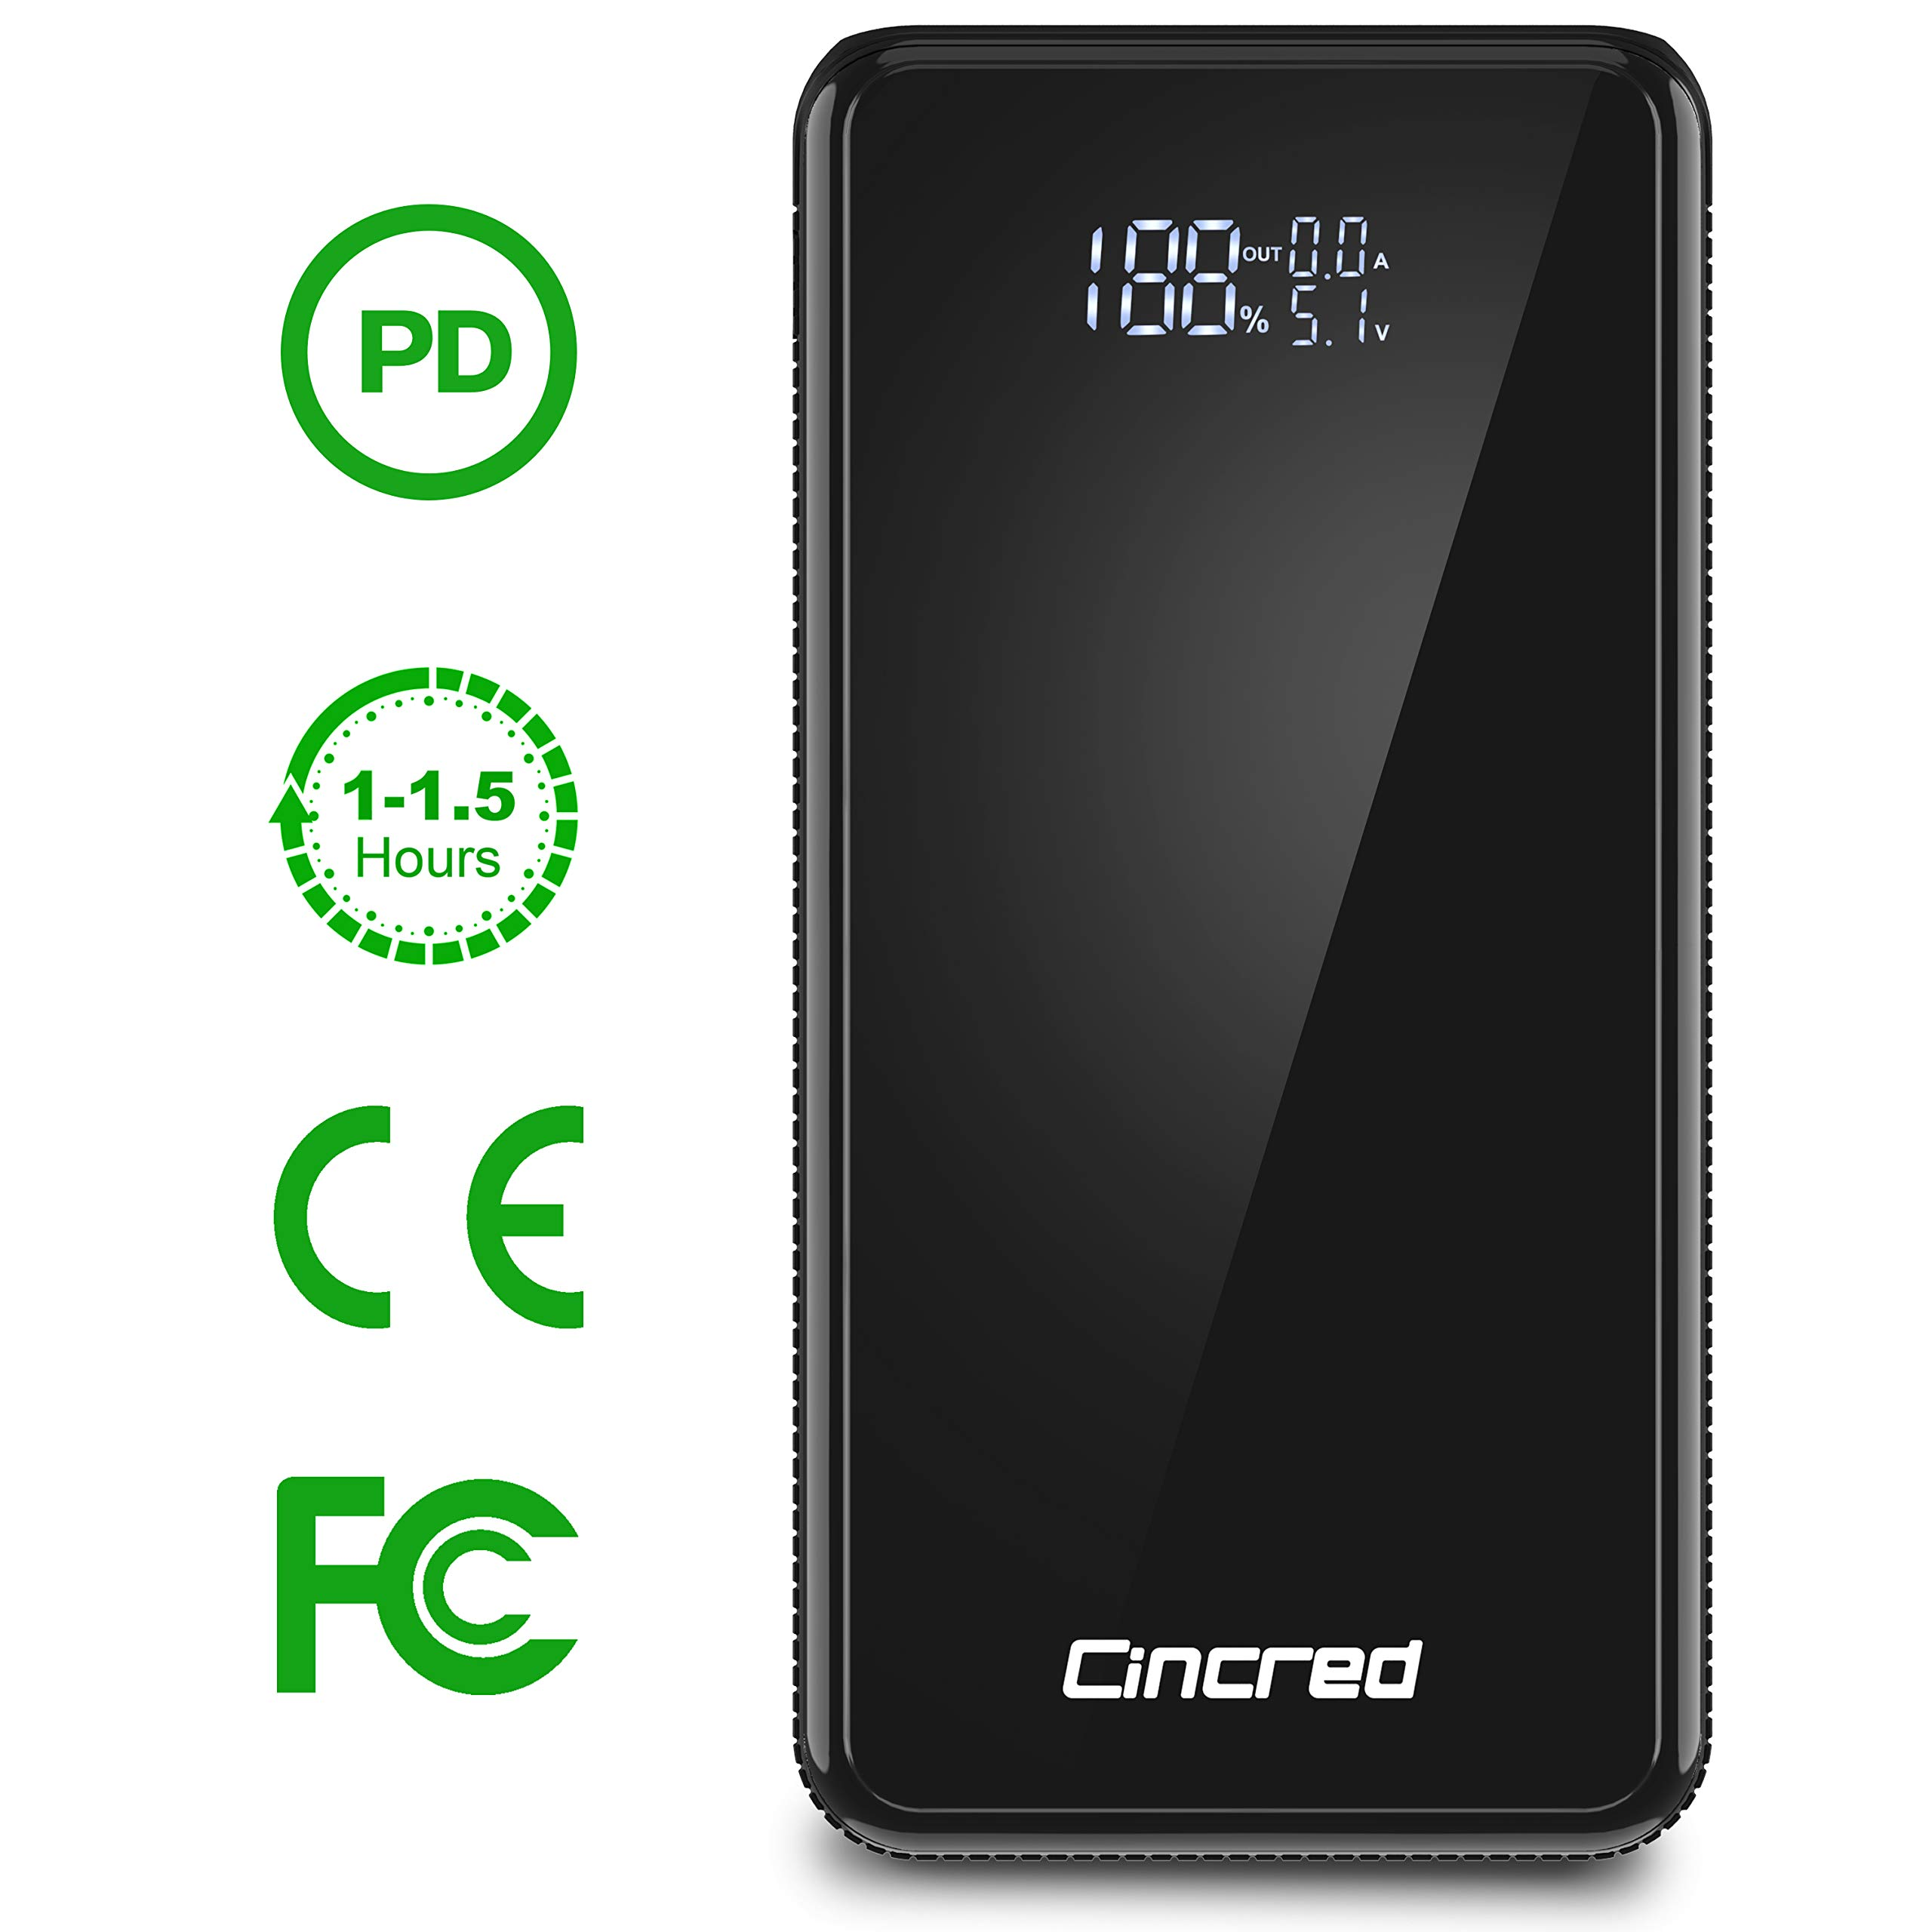 Updated 2019 Version PD Power Bank 20000mah USB C Power Delivery (18W) Portable Phone Charger, Ultra High Capacity Power Bank with 5.1A Output, External Battery Pack for iPhone, iPad, Samsung by Cincred